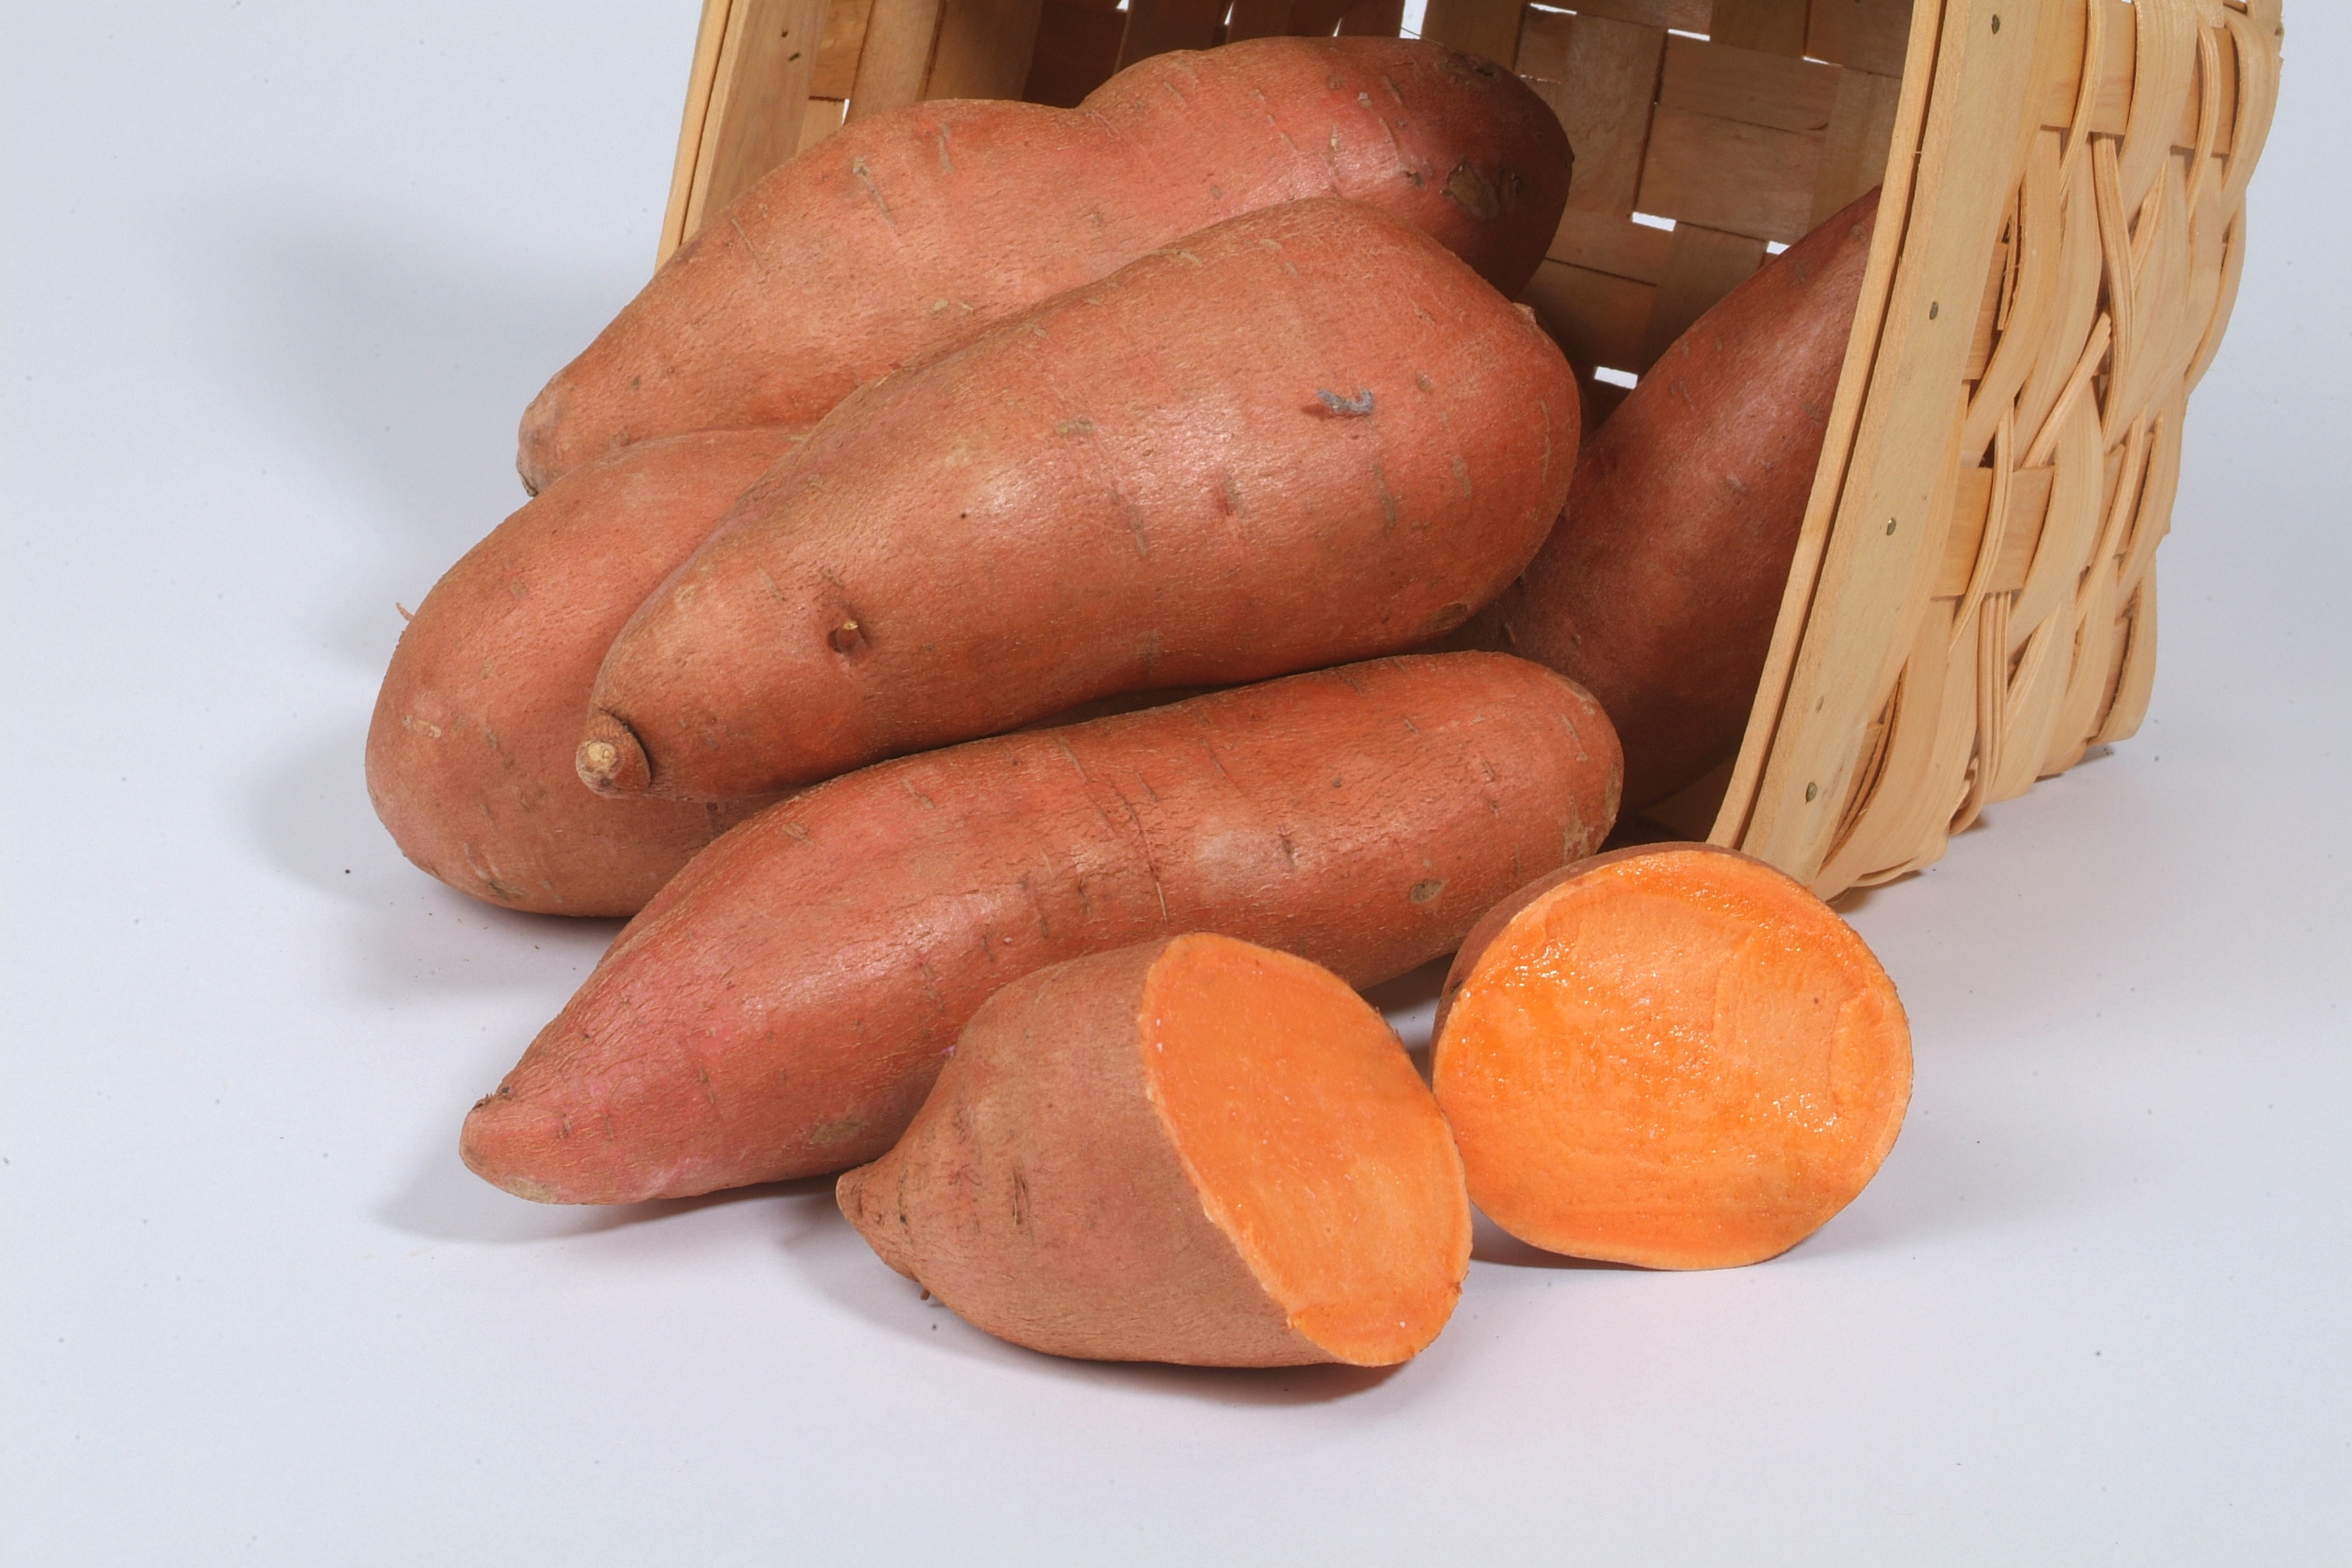 Sweet potatoes with orange skin in basket with one cut open revealing deep orange flesh.